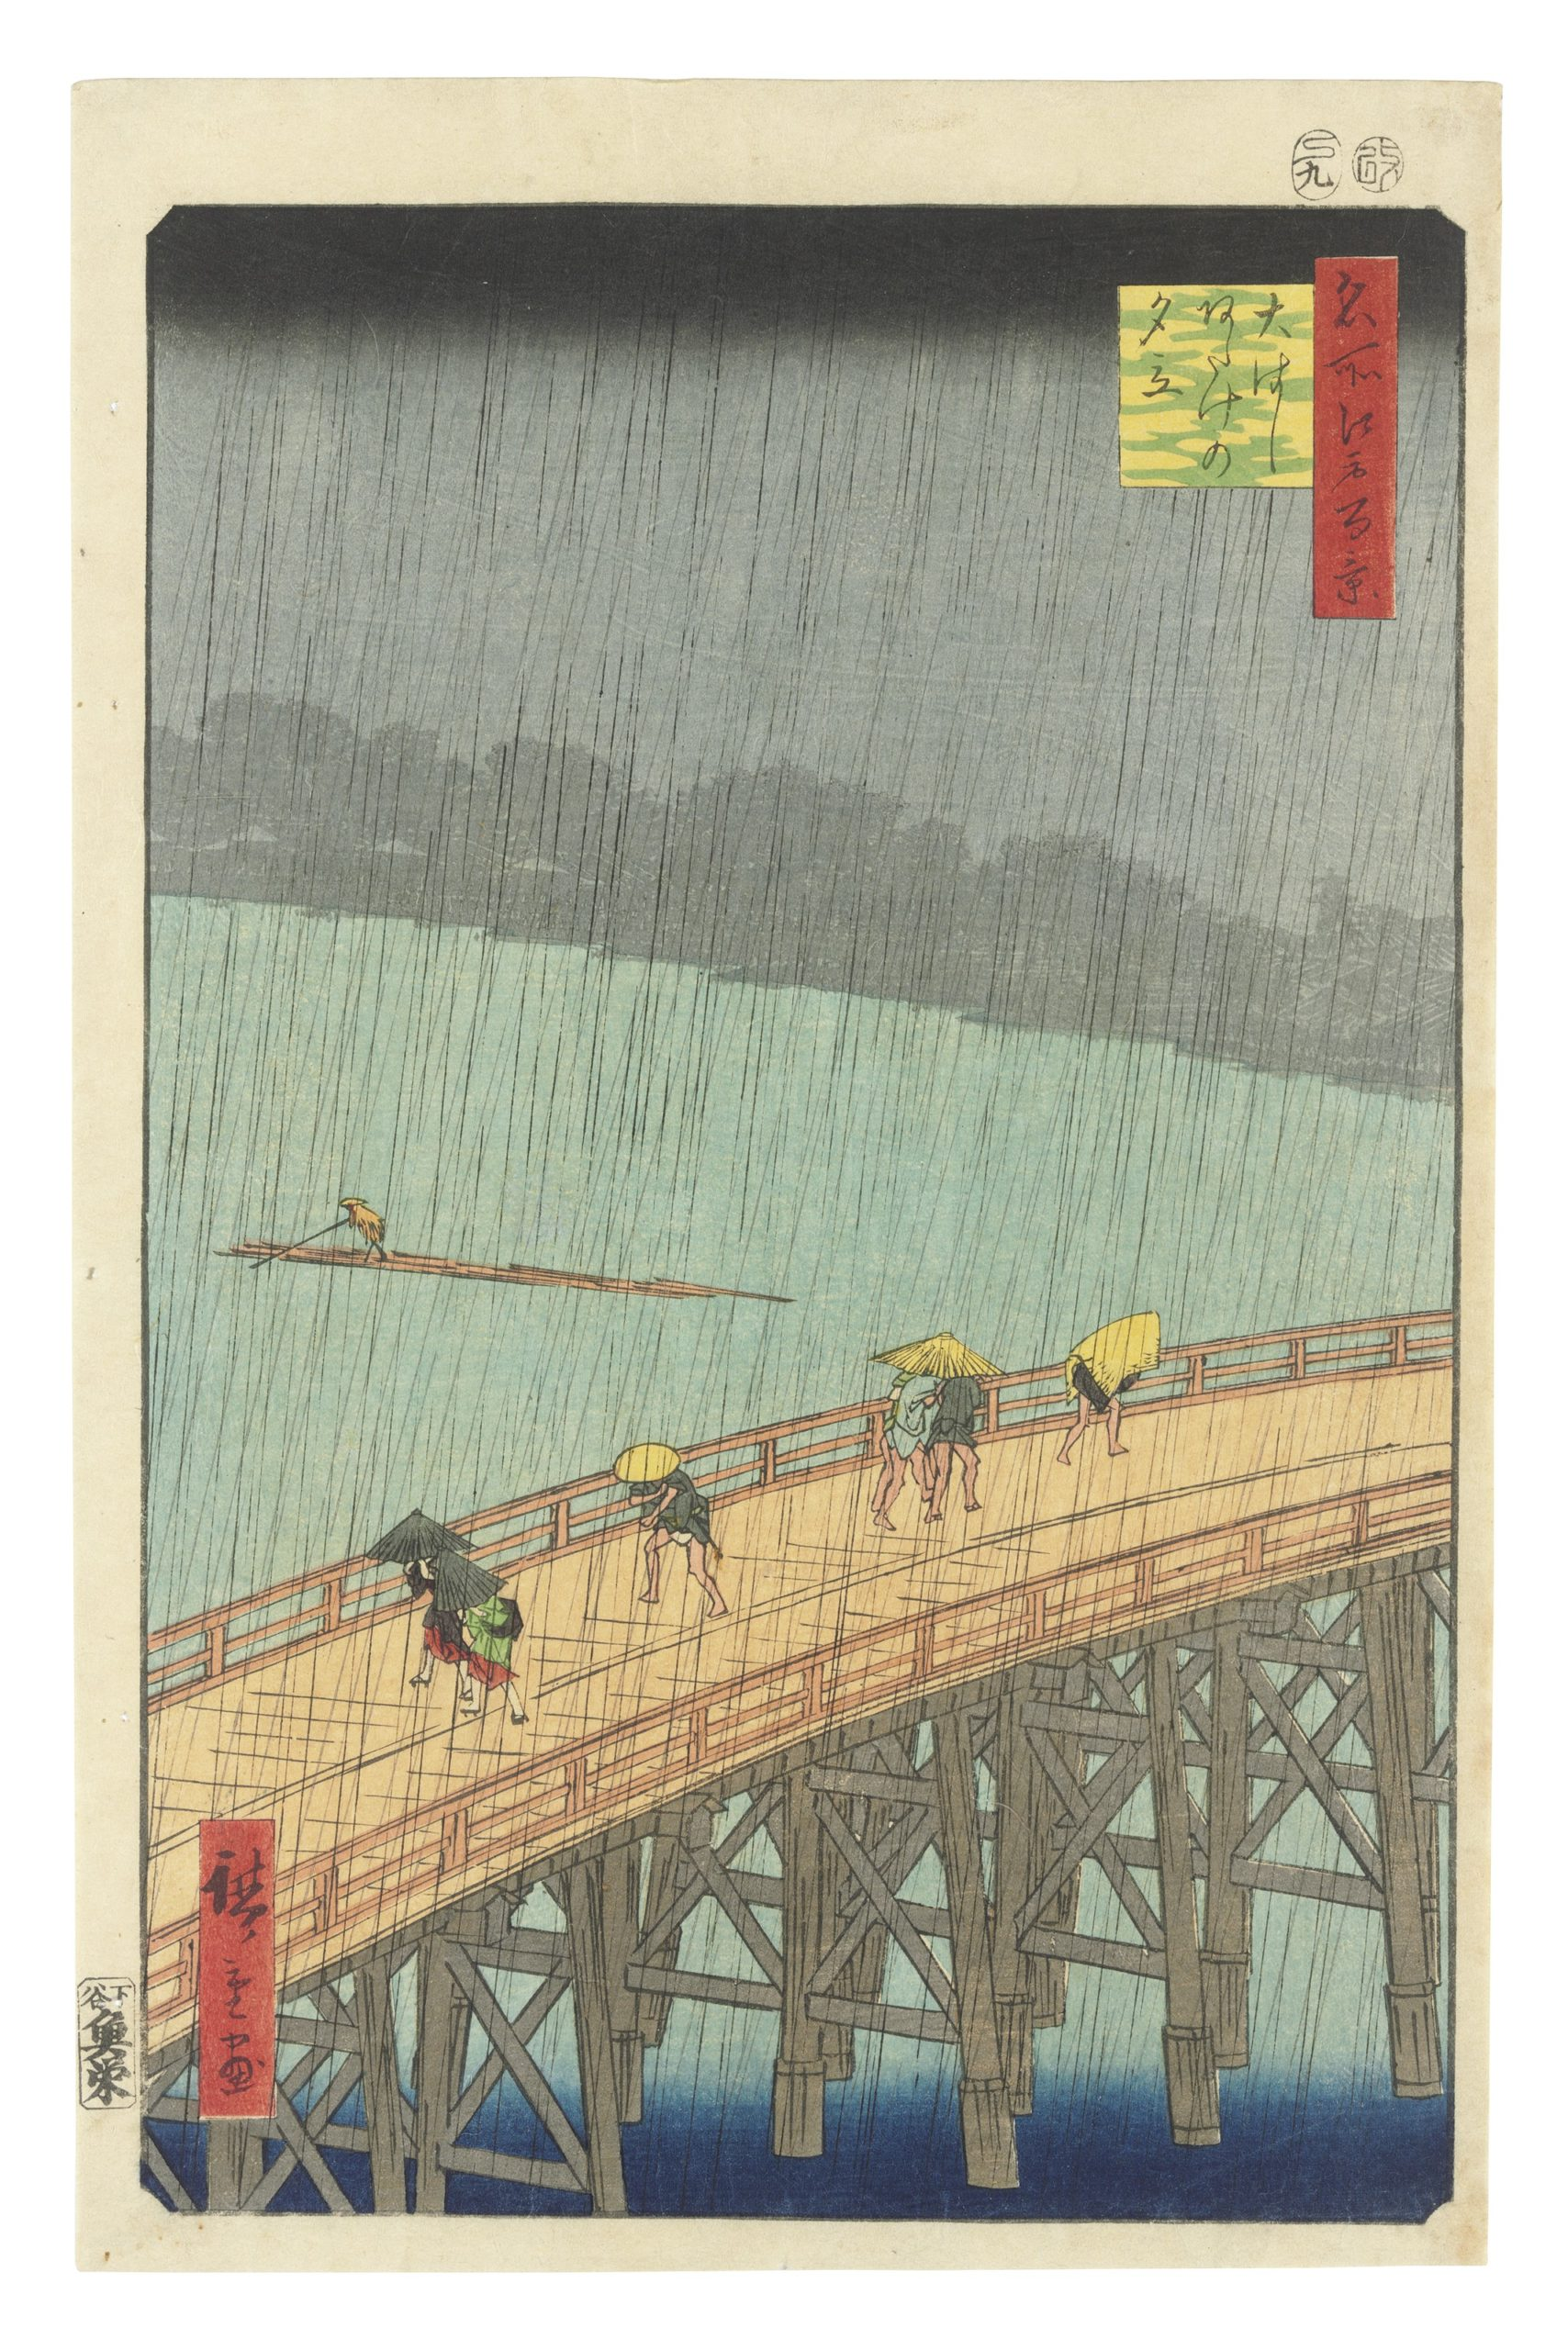 UTAGAWA HIROSHIGE (1797-1858) Sudden Shower over Shin-Ohashi Bridge and Atake (Ohashi Atake no yudachi) From the series One Hundred Famous Views of Edo (Meisho Edo hyakkei) Woodblock print, signed Hiroshige ga, Published by Uoya Eikichi, 9th month 1857, GBP 20,000 - GBP 30,000